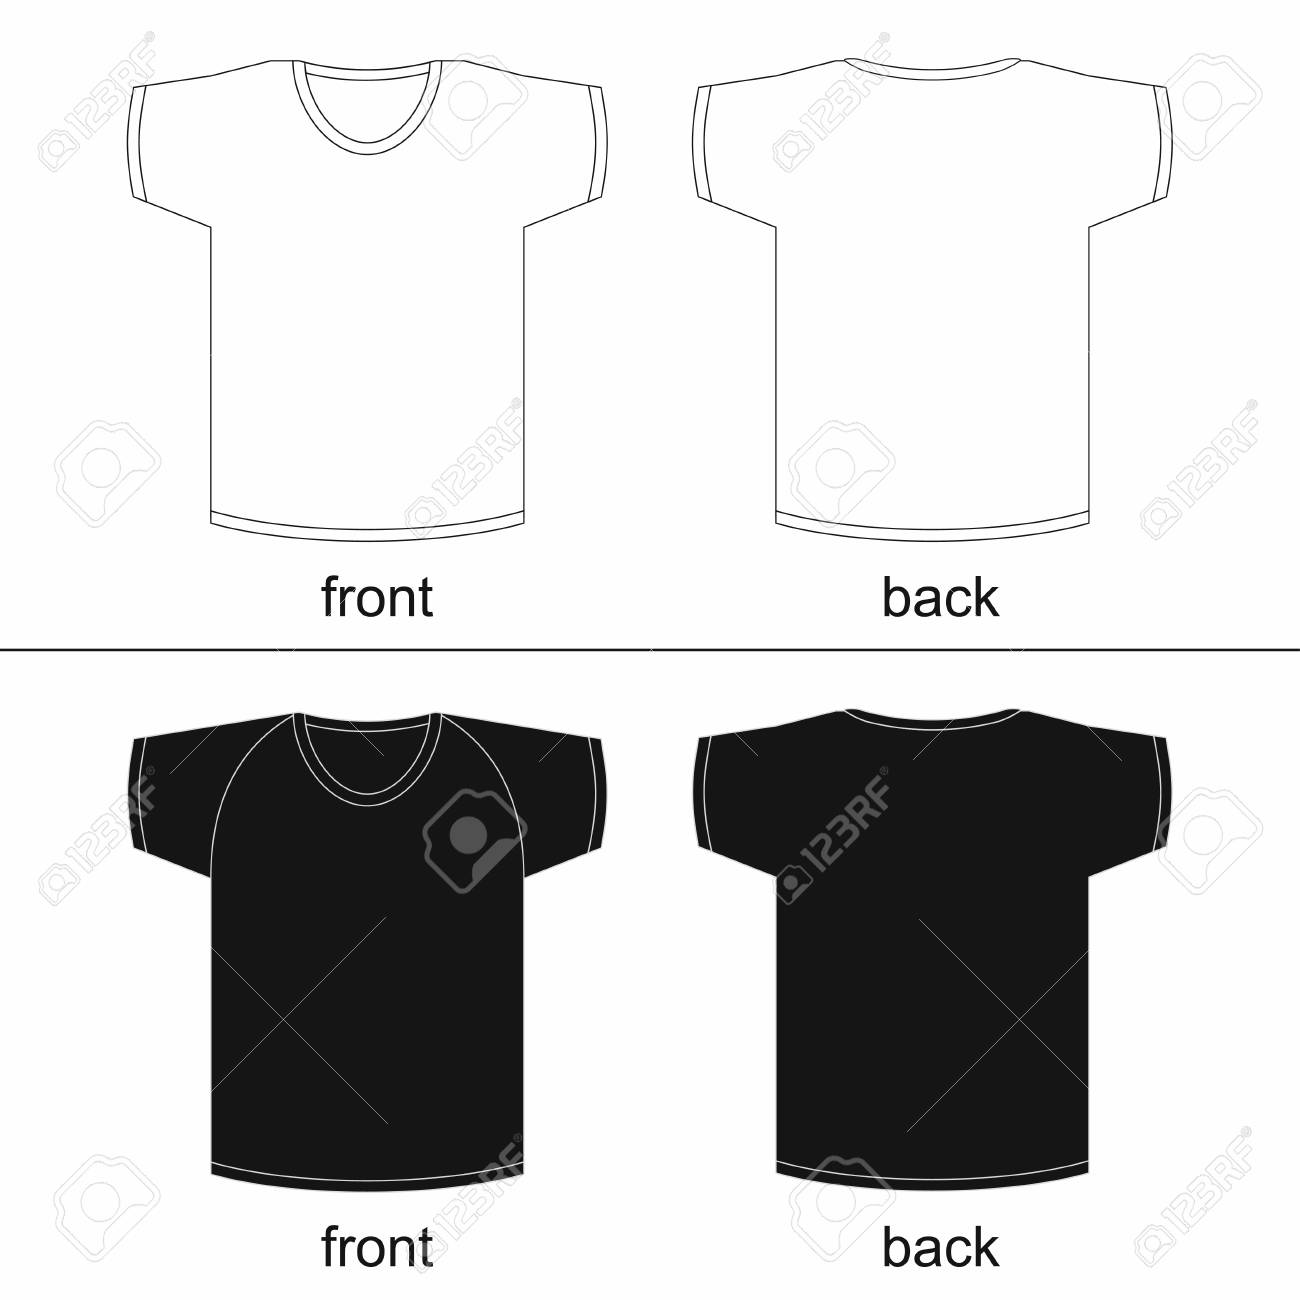 Printable T Shirt Template | Blank T Shirt Template Front And Back For Printable Vector